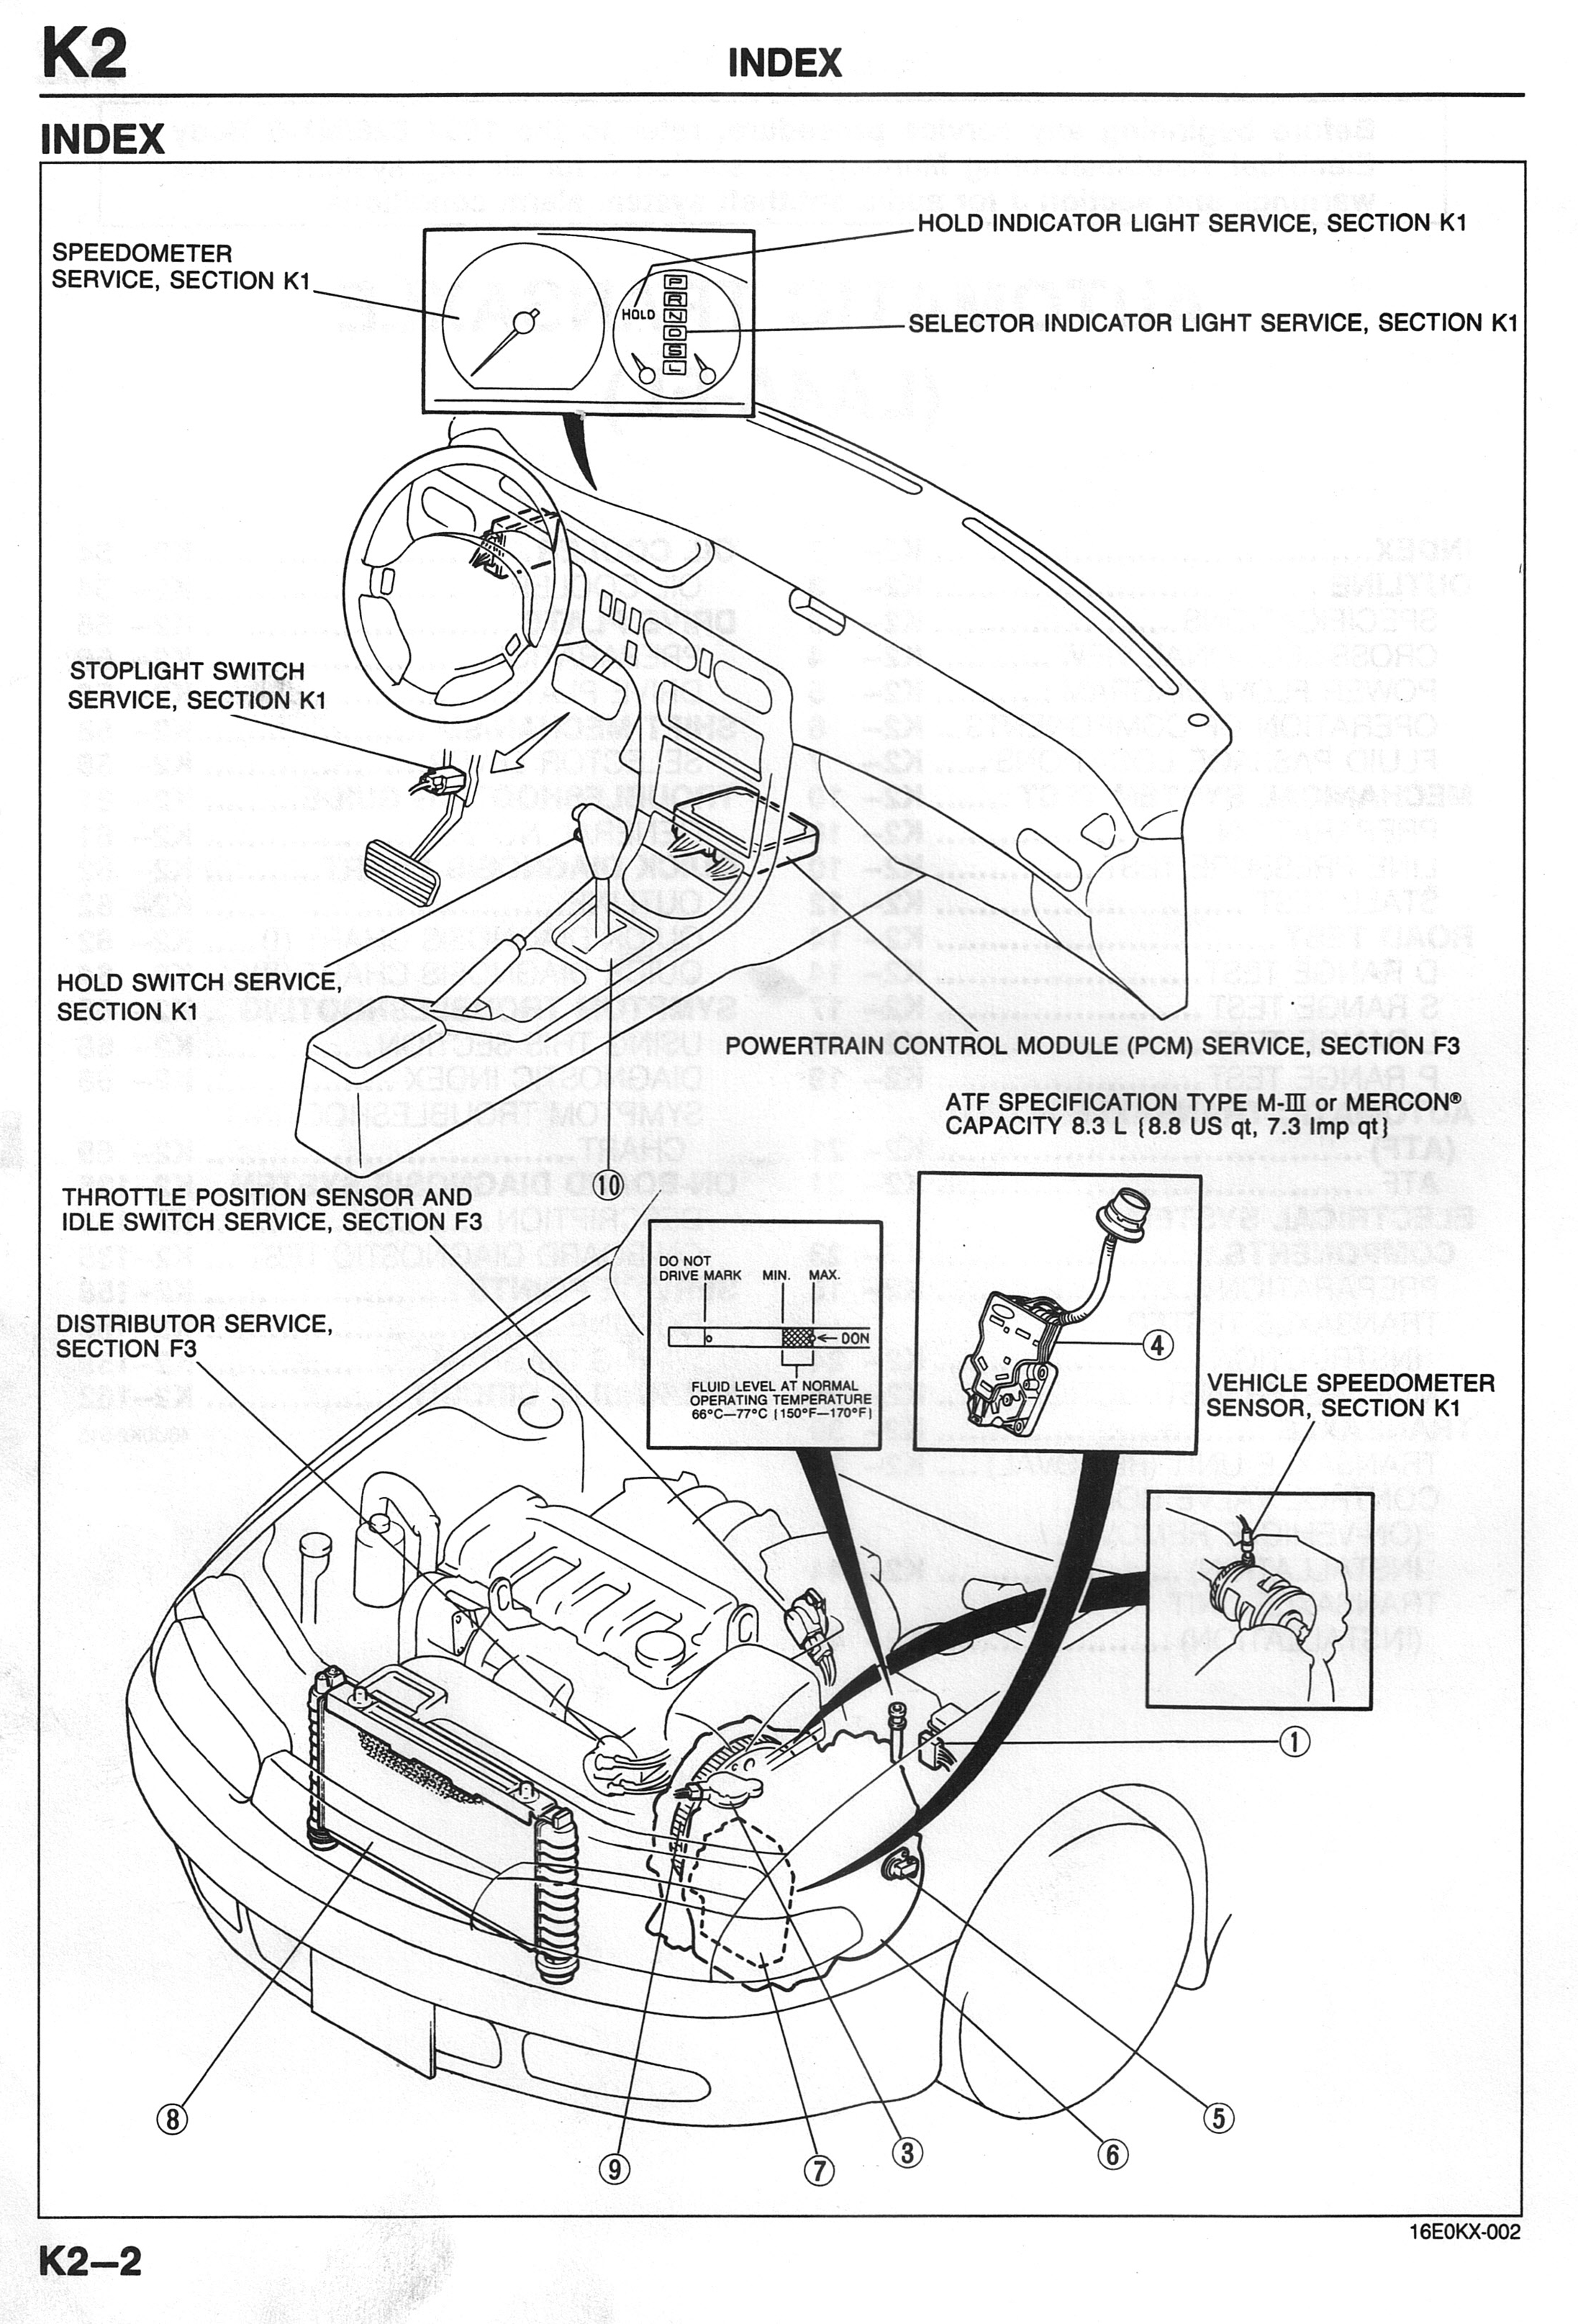 nissan altima 2 5 engine sd sensor diagram nissan titan engine hoses wiring diagram   odicis 2002 Mazda 626 Wiring-Diagram 2002 Mazda 626 Wiring-Diagram